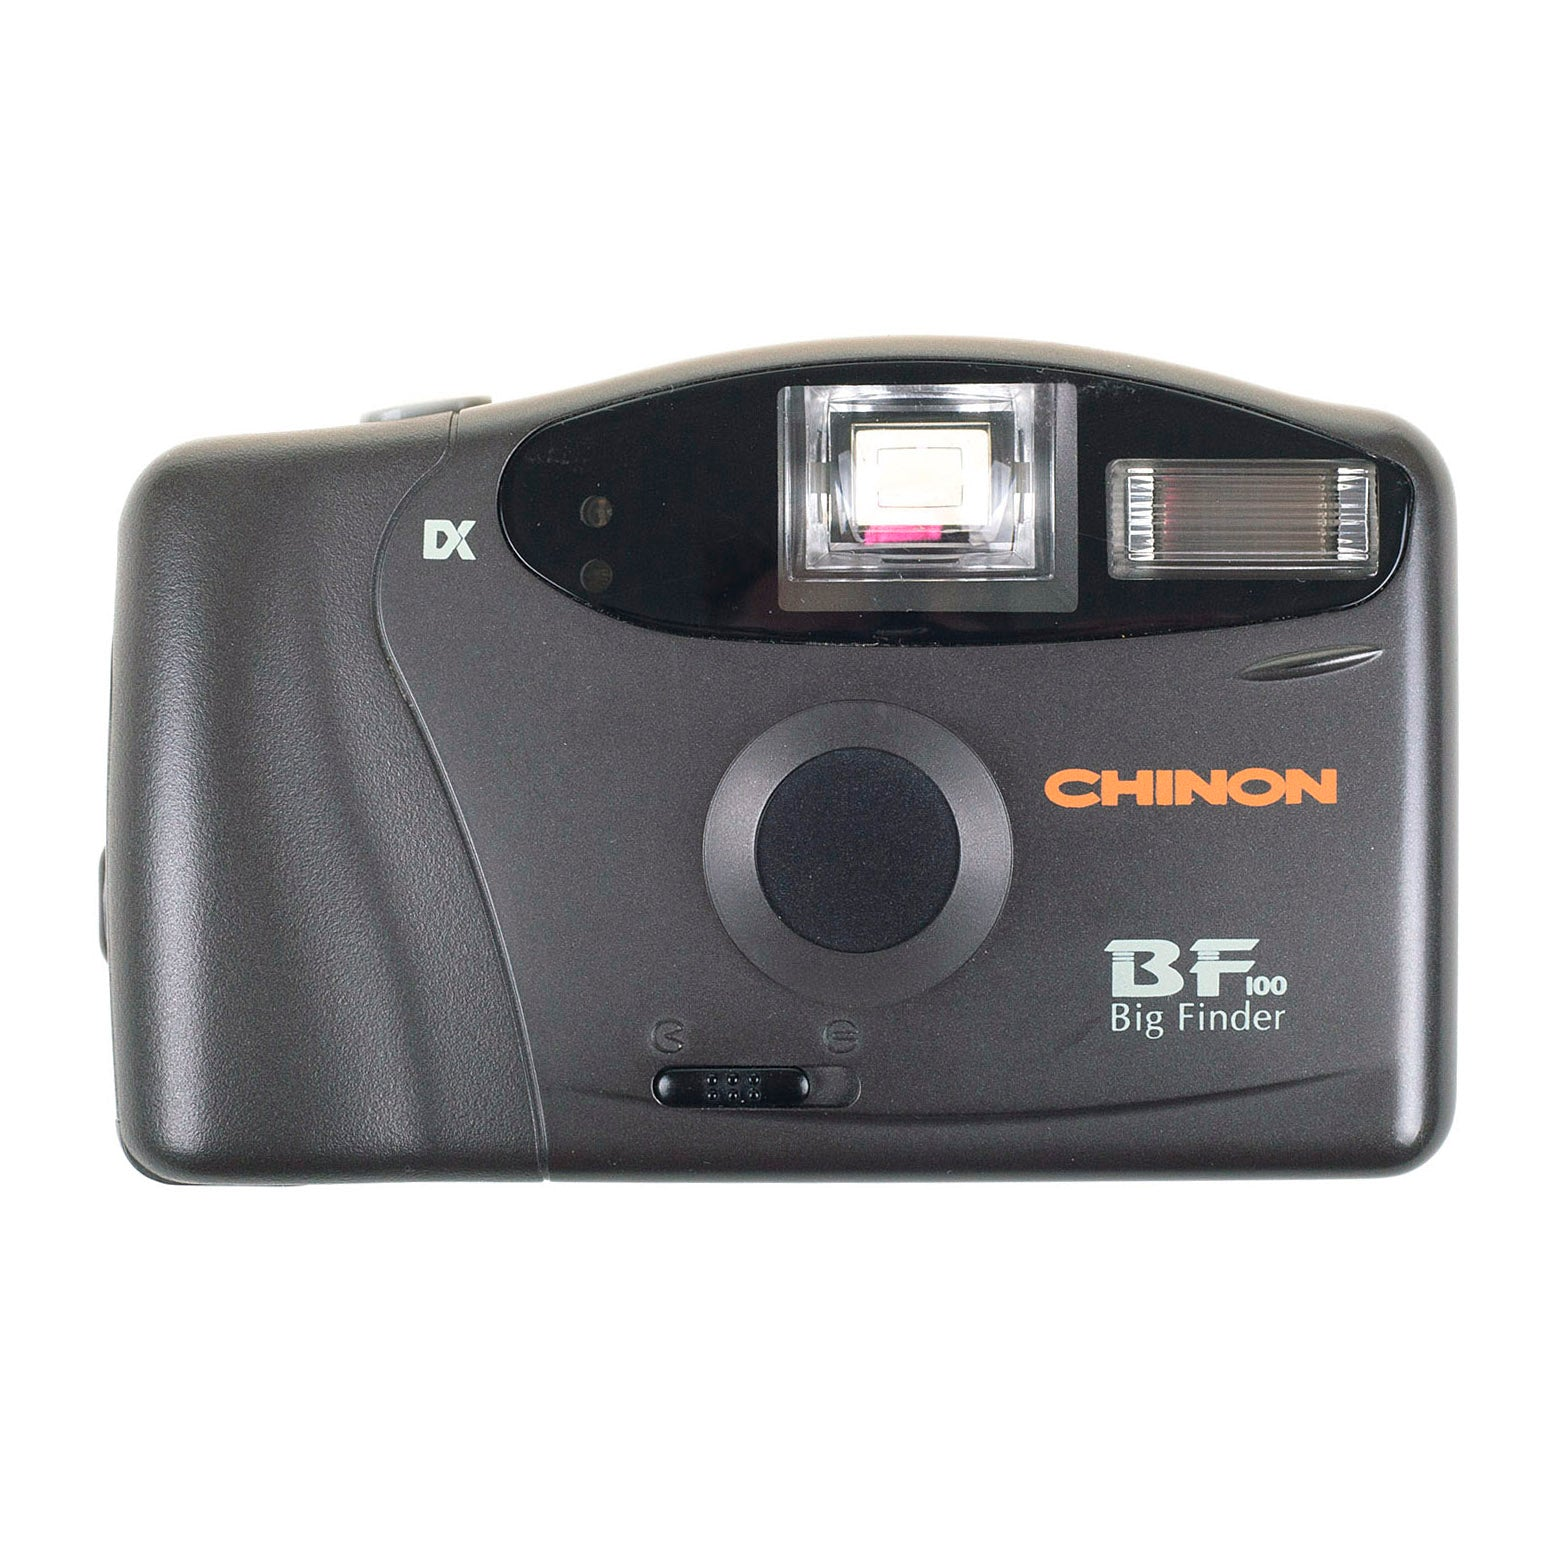 Chinon BF100 Big Finder with FREE Kodak ColorPlus film